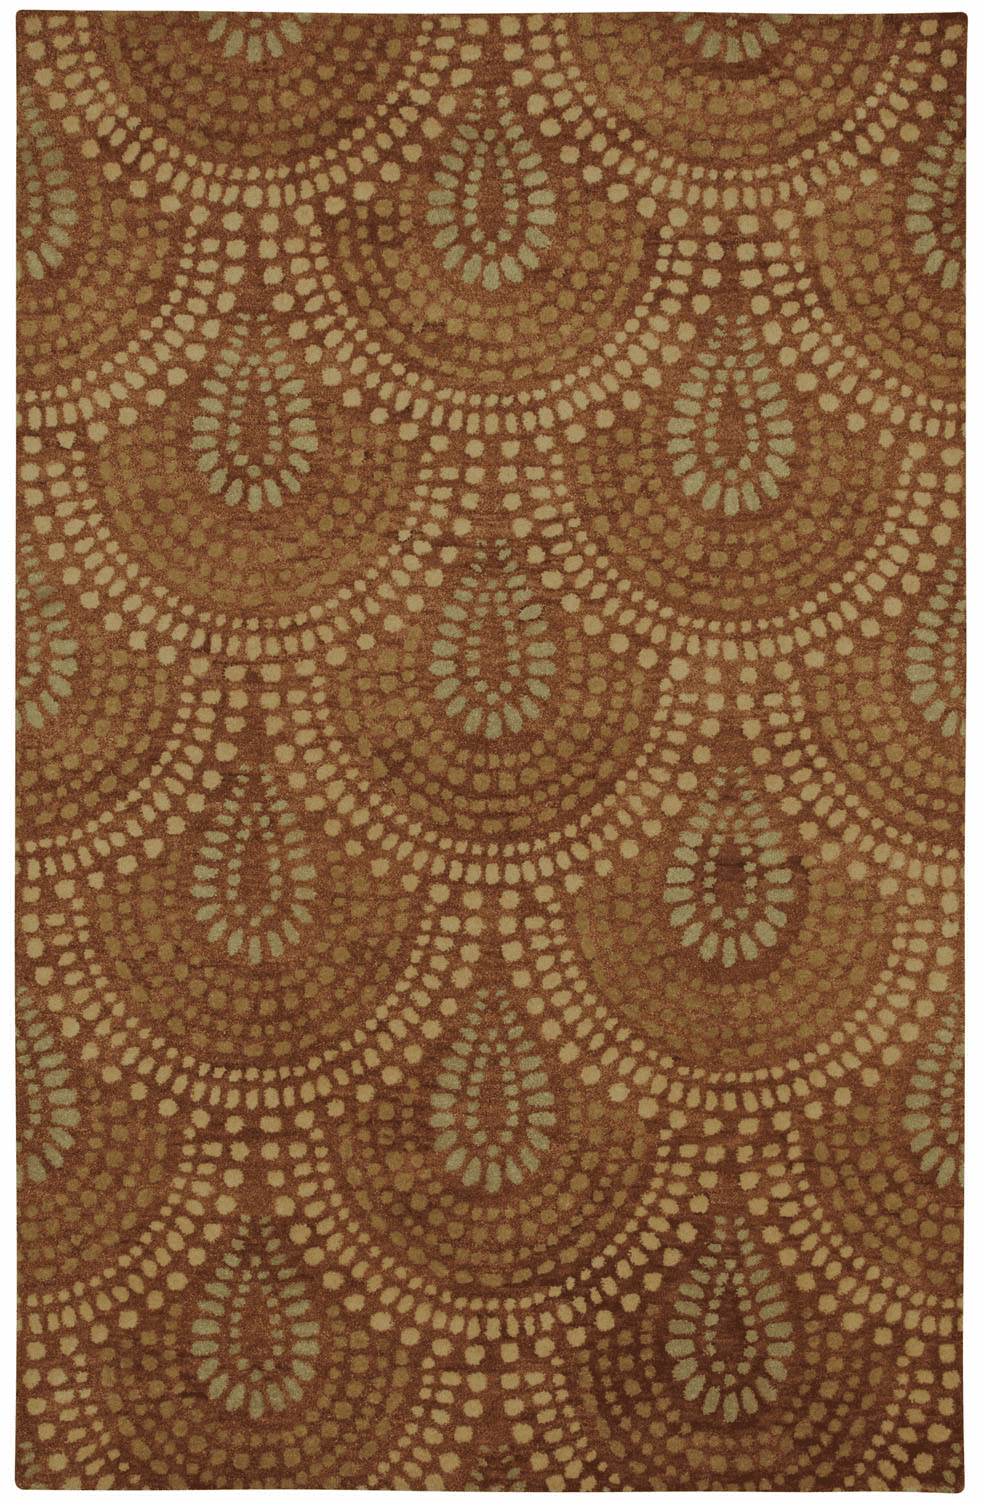 Hand Tufted Cinnamon Rug